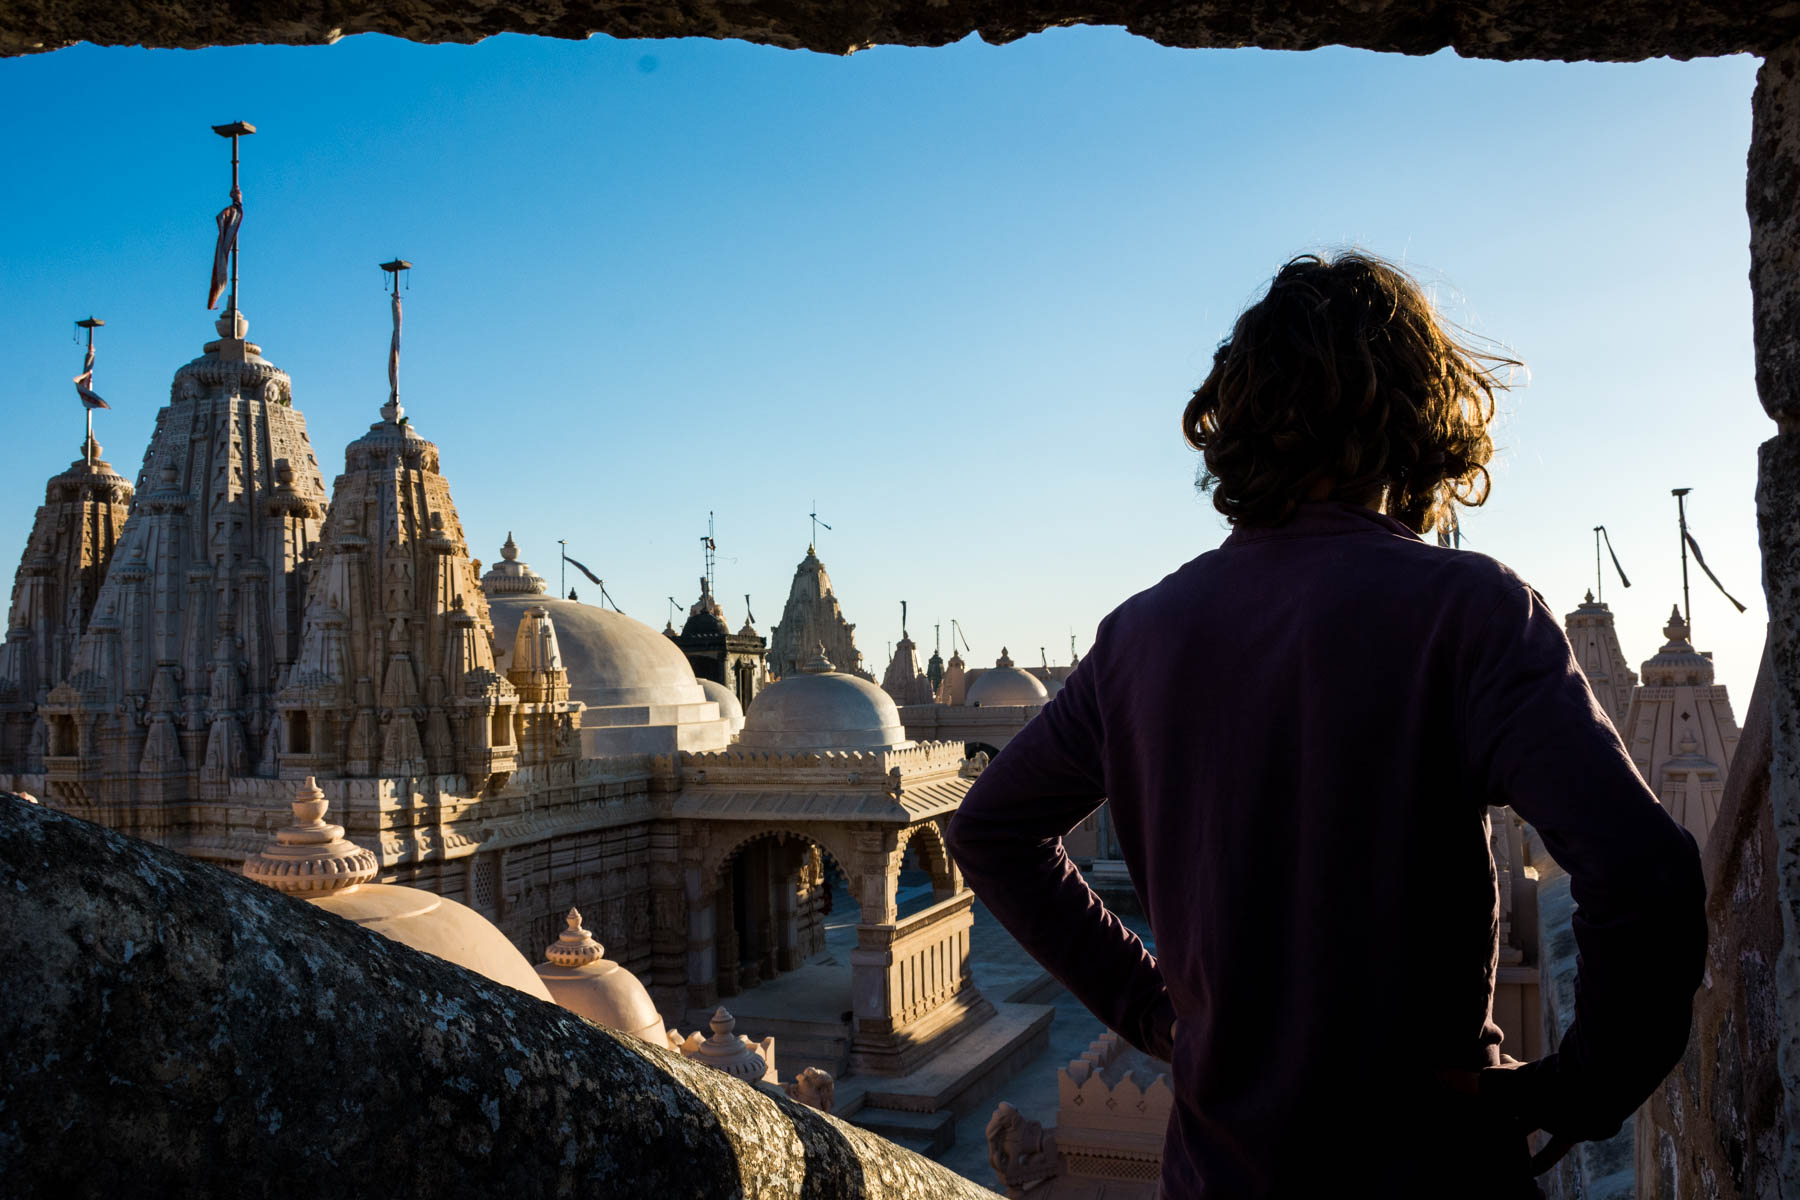 Jain pilgrimage in Palitana, India - Sebastiaan looking out over the temples of Palitana - Lost With Purpose